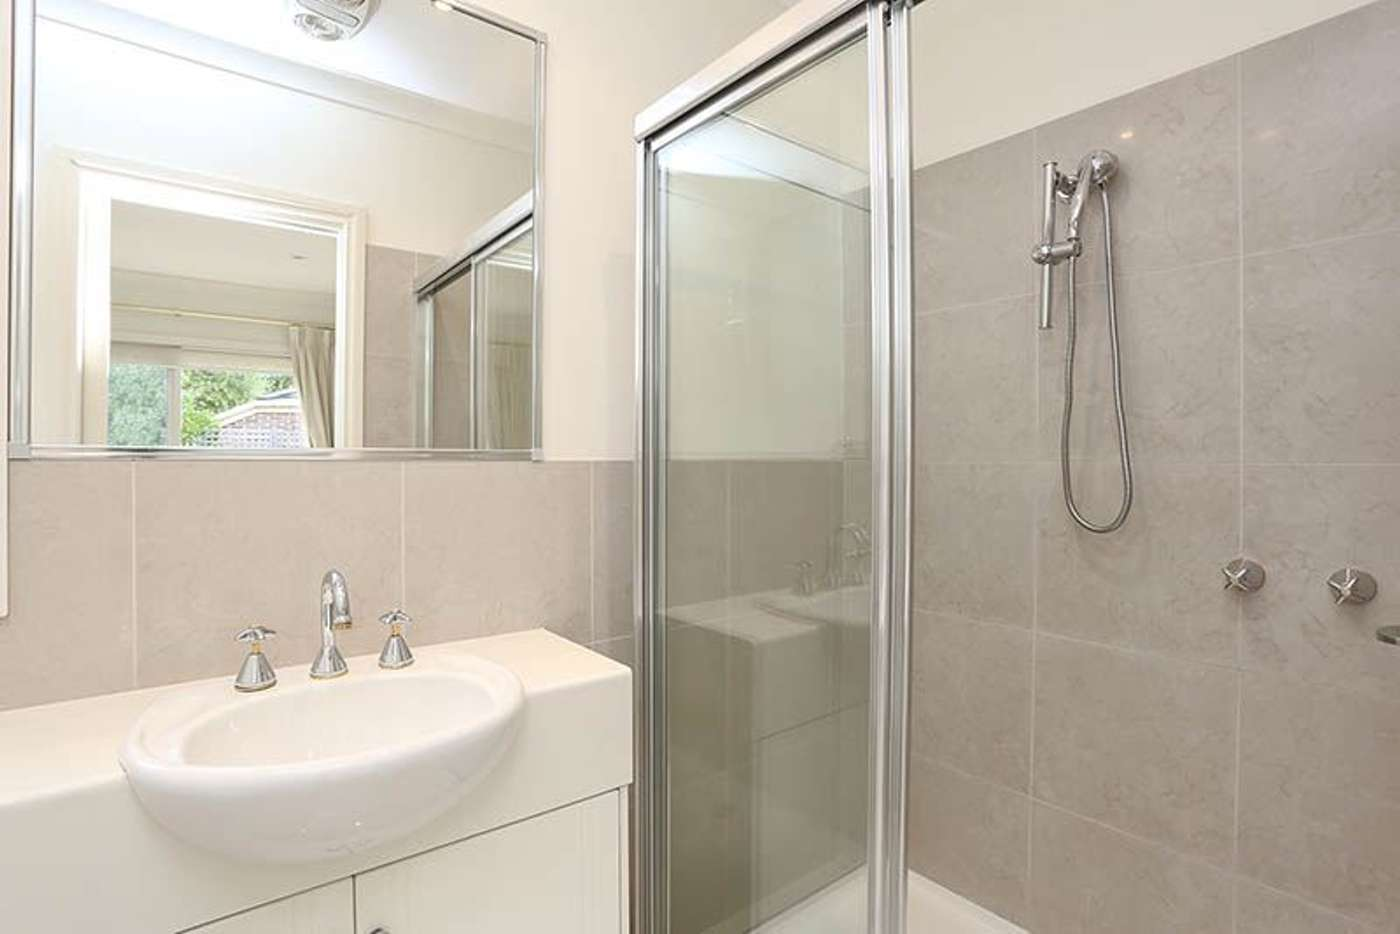 Seventh view of Homely unit listing, 2/51 Summit Crescent, Glen Waverley VIC 3150